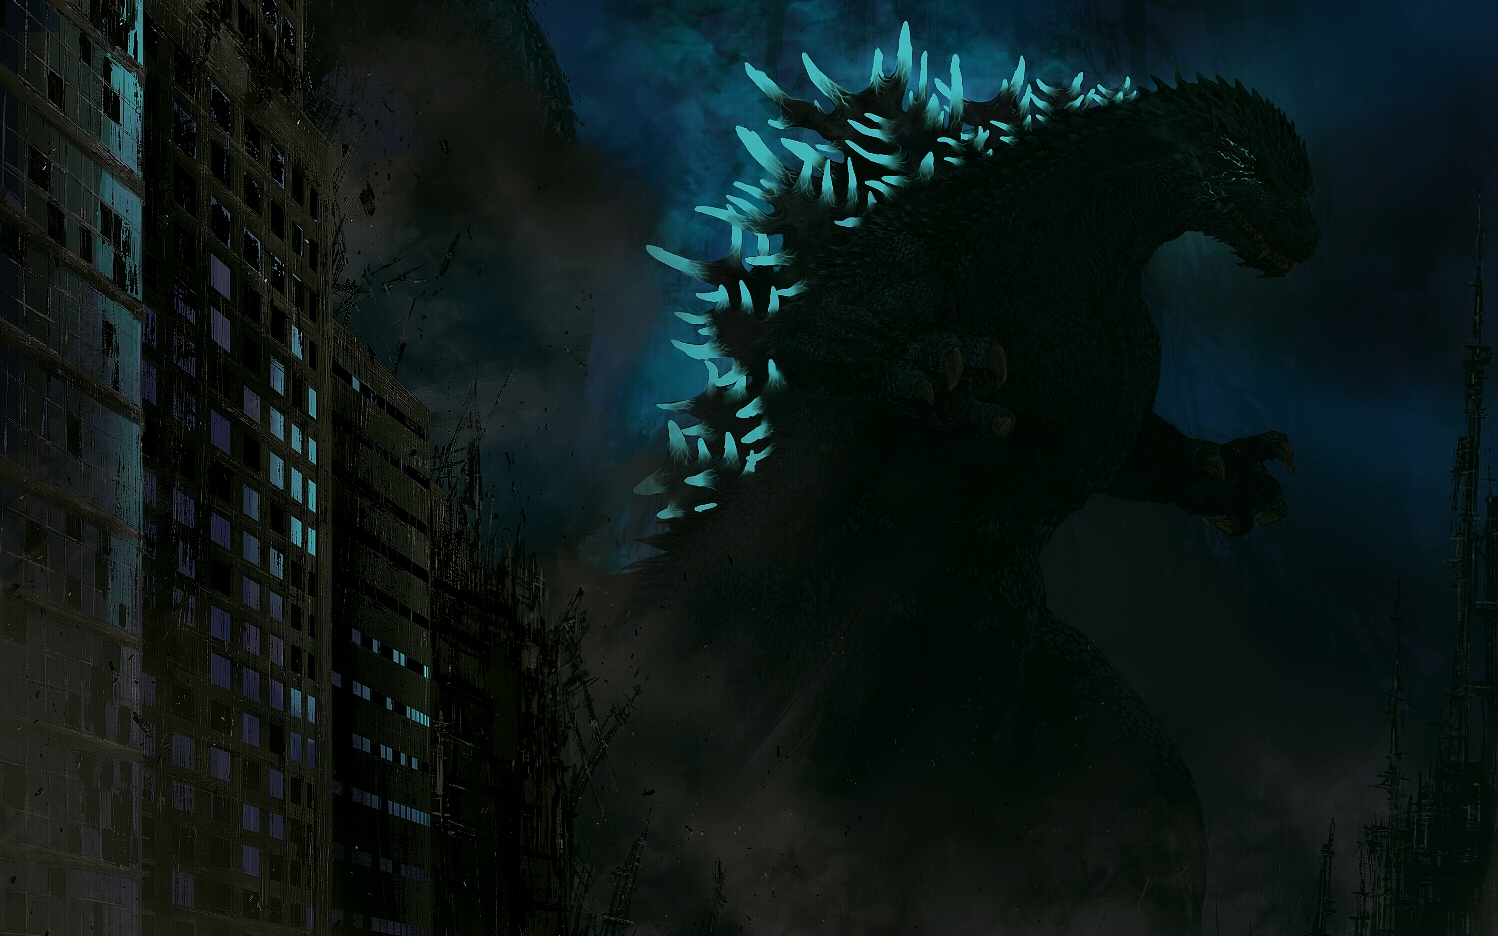 Godzilla Computer Wallpapers Desktop Backgrounds 1498x936